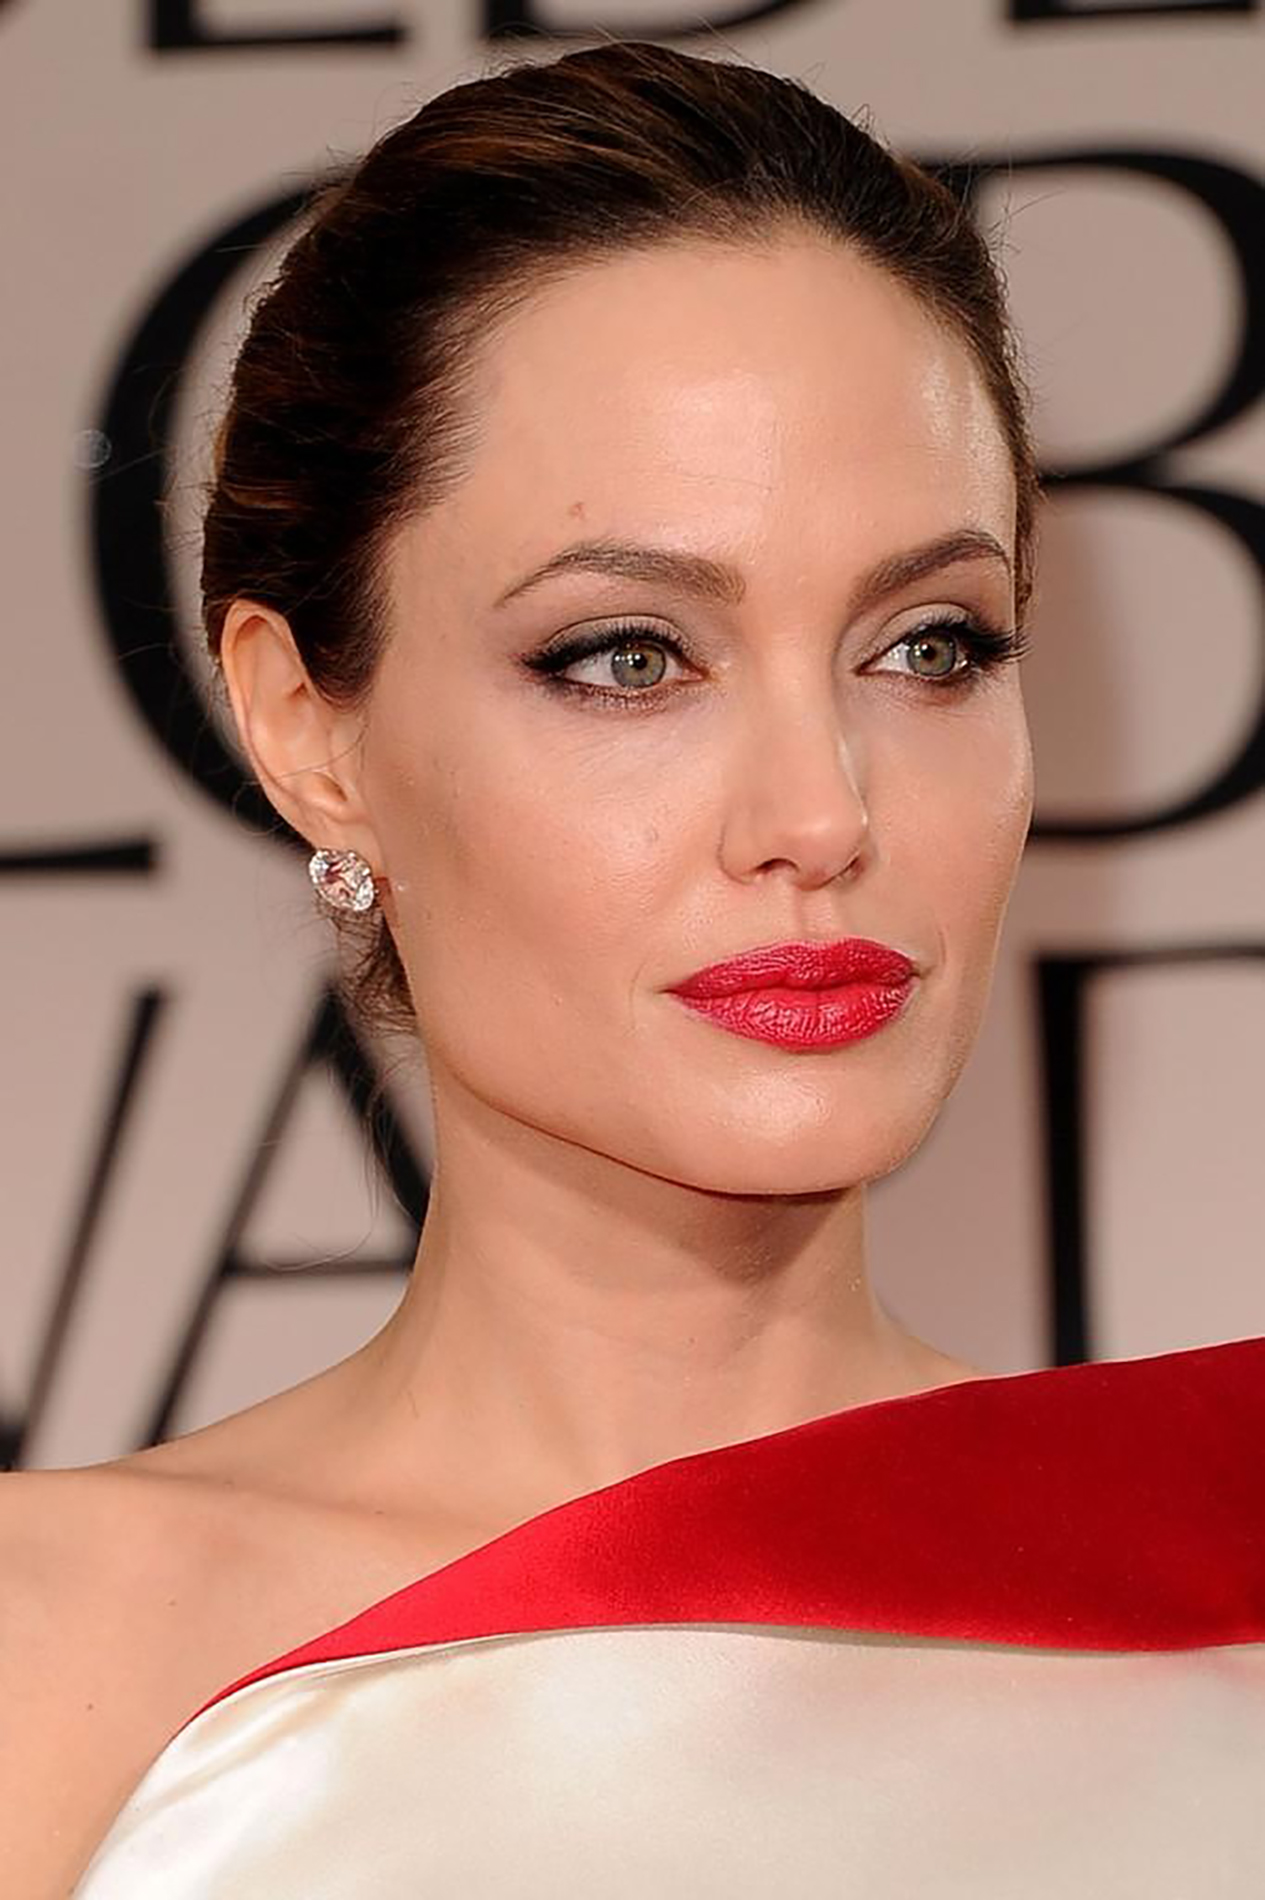 angelina jolie red lips eyelinermakeup